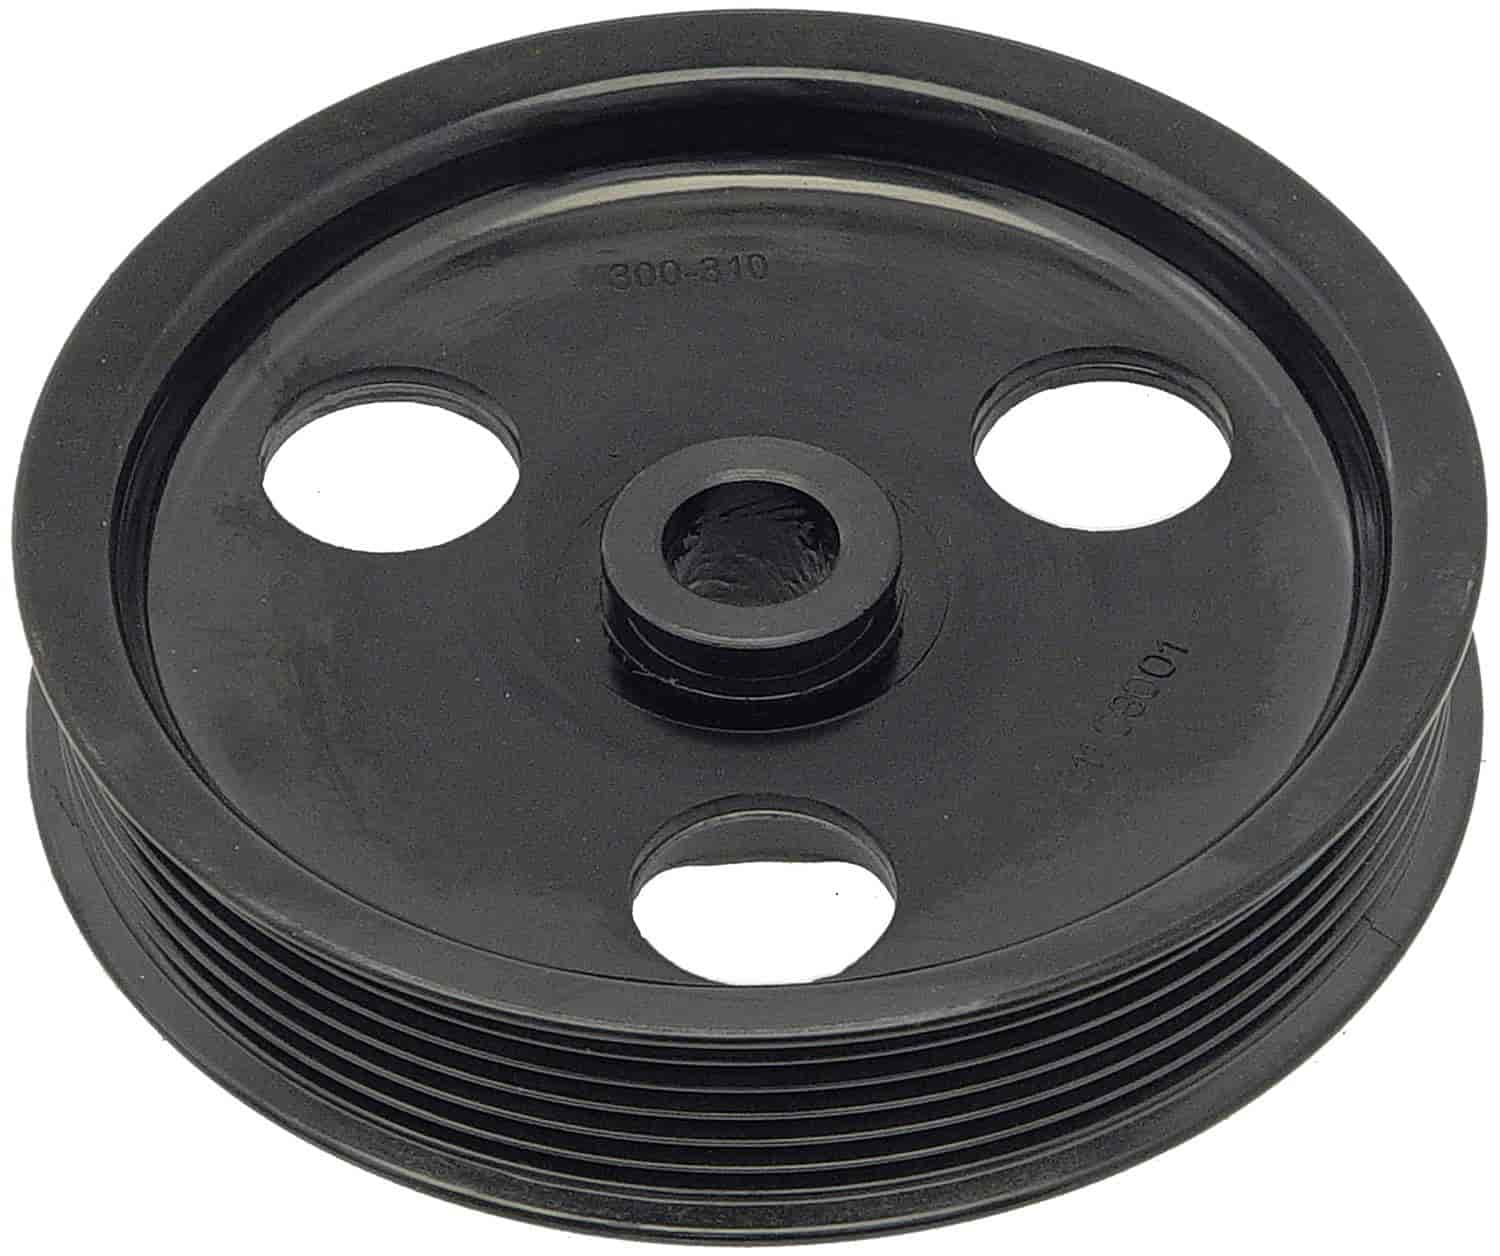 Dorman Products 300-310